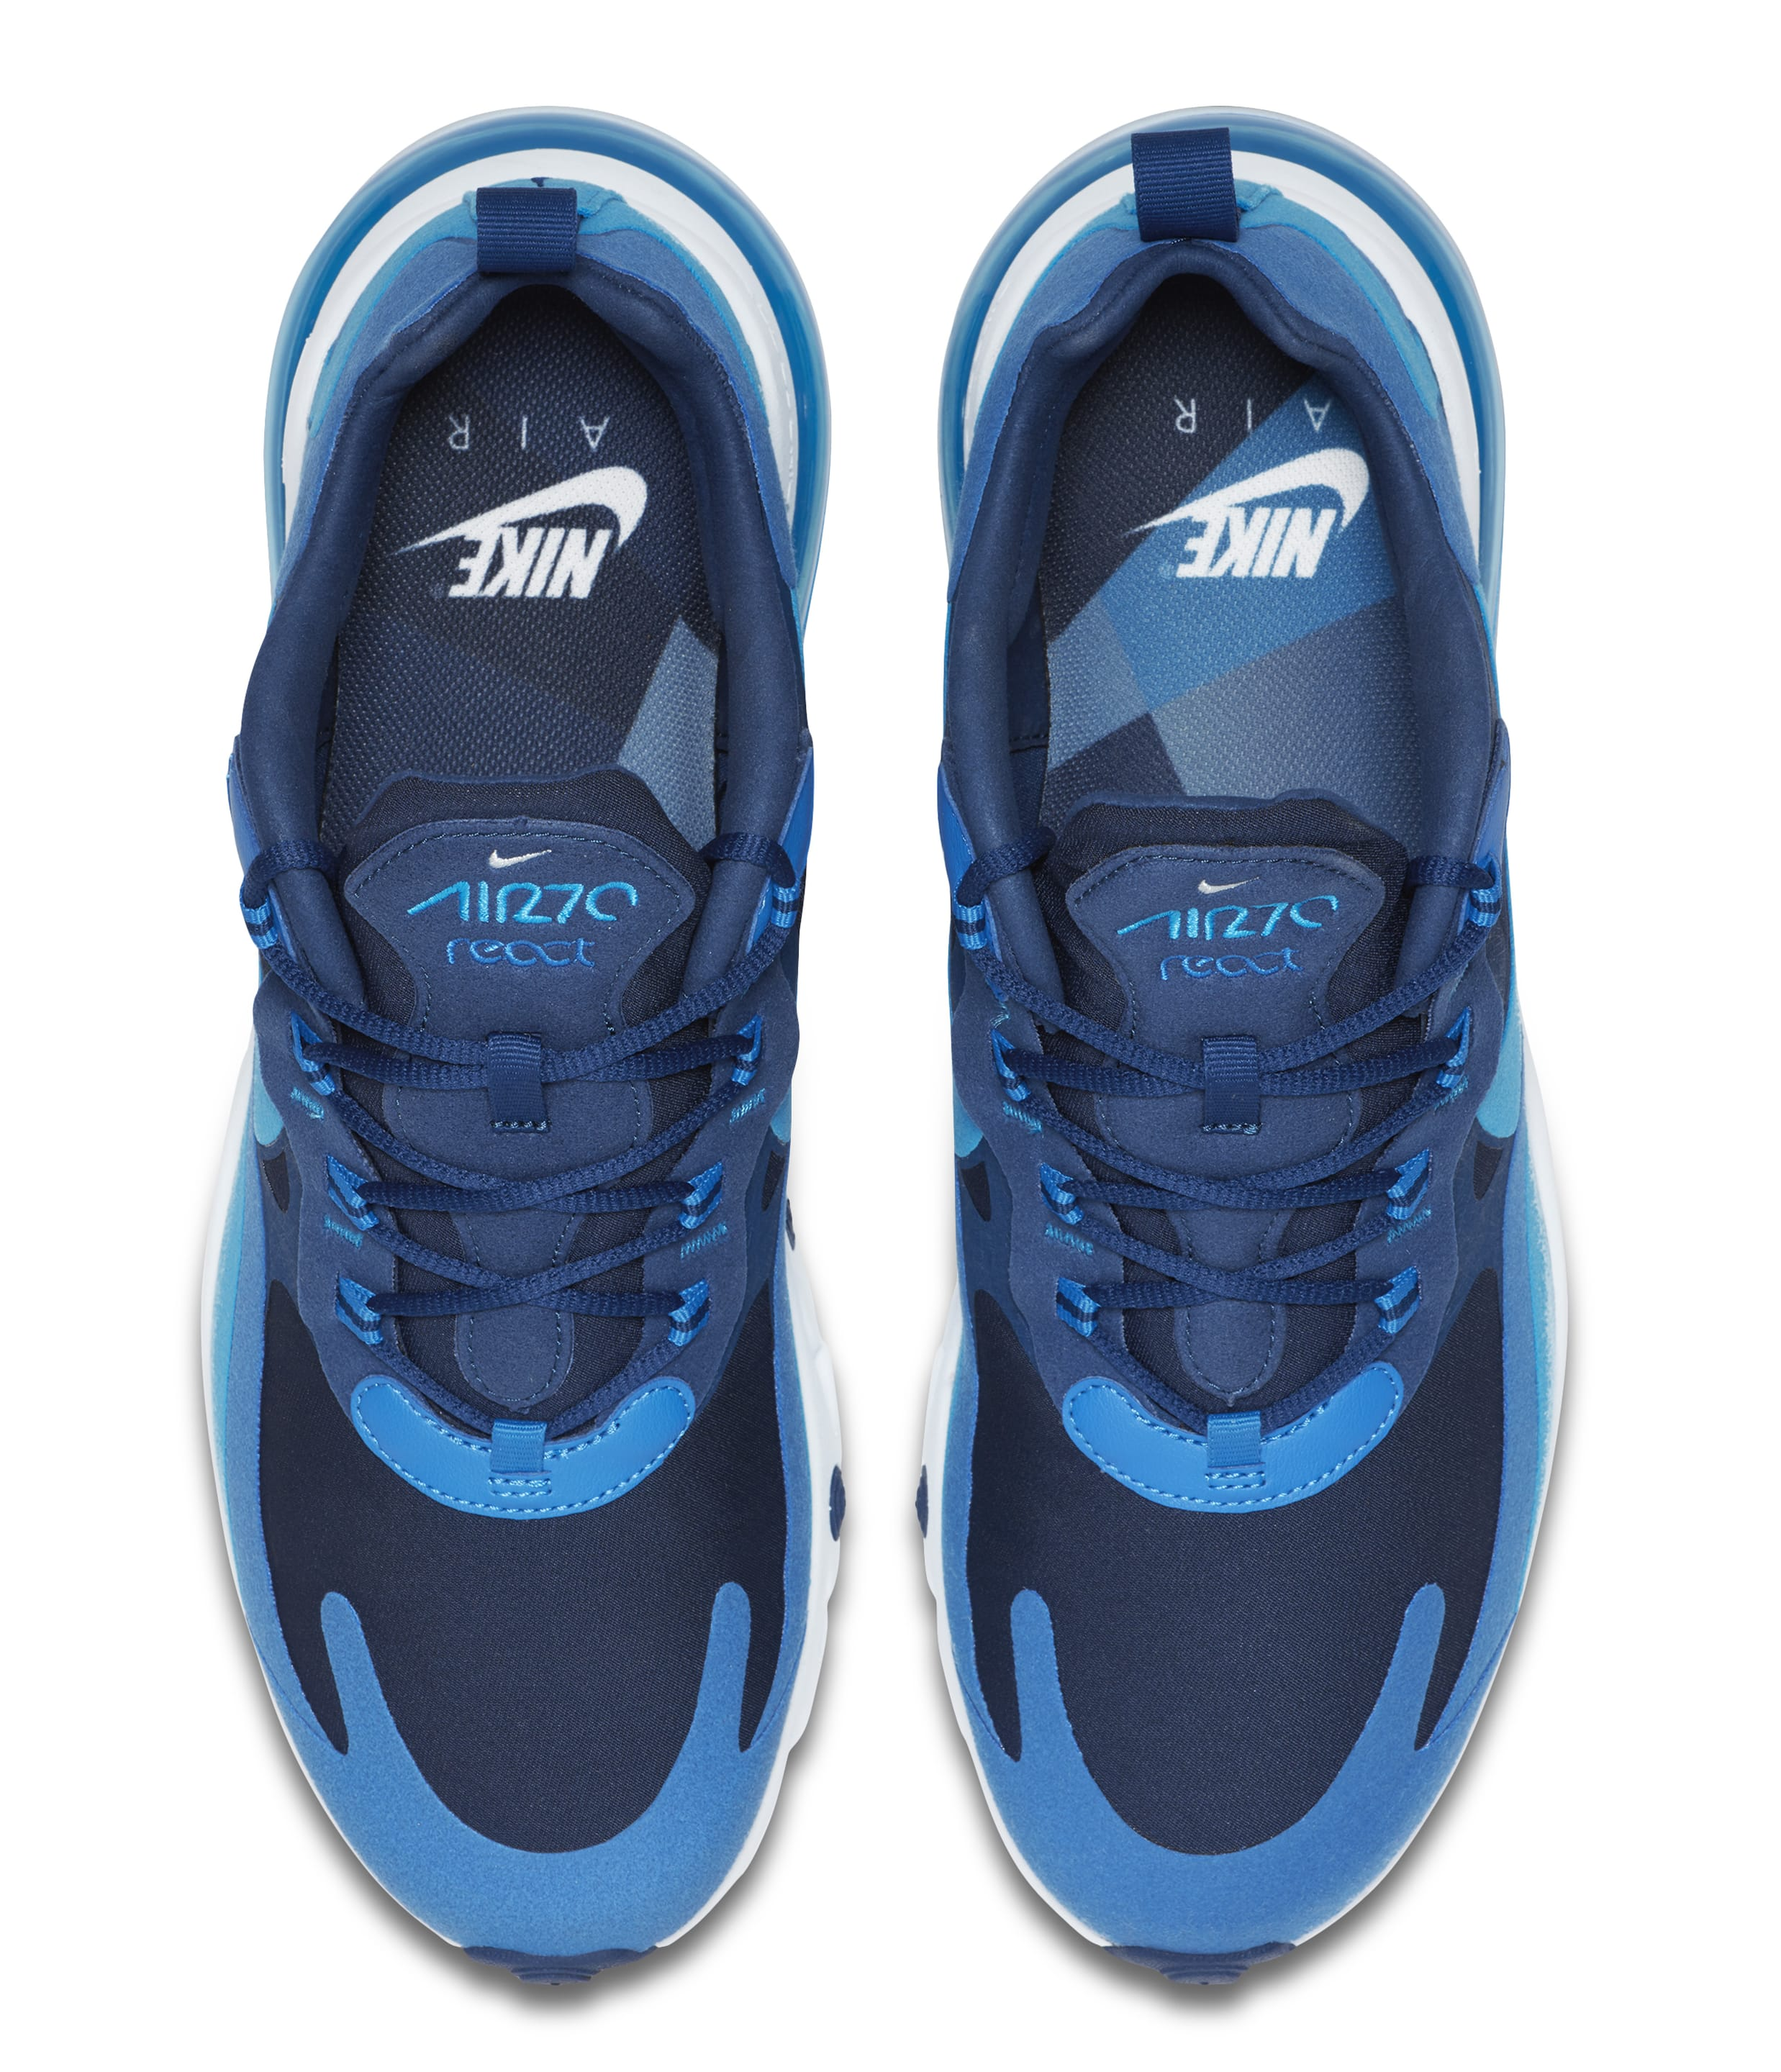 promo code 3bc9c 75923 Nike Air Max 270 React Official Reveal | Sole Collector